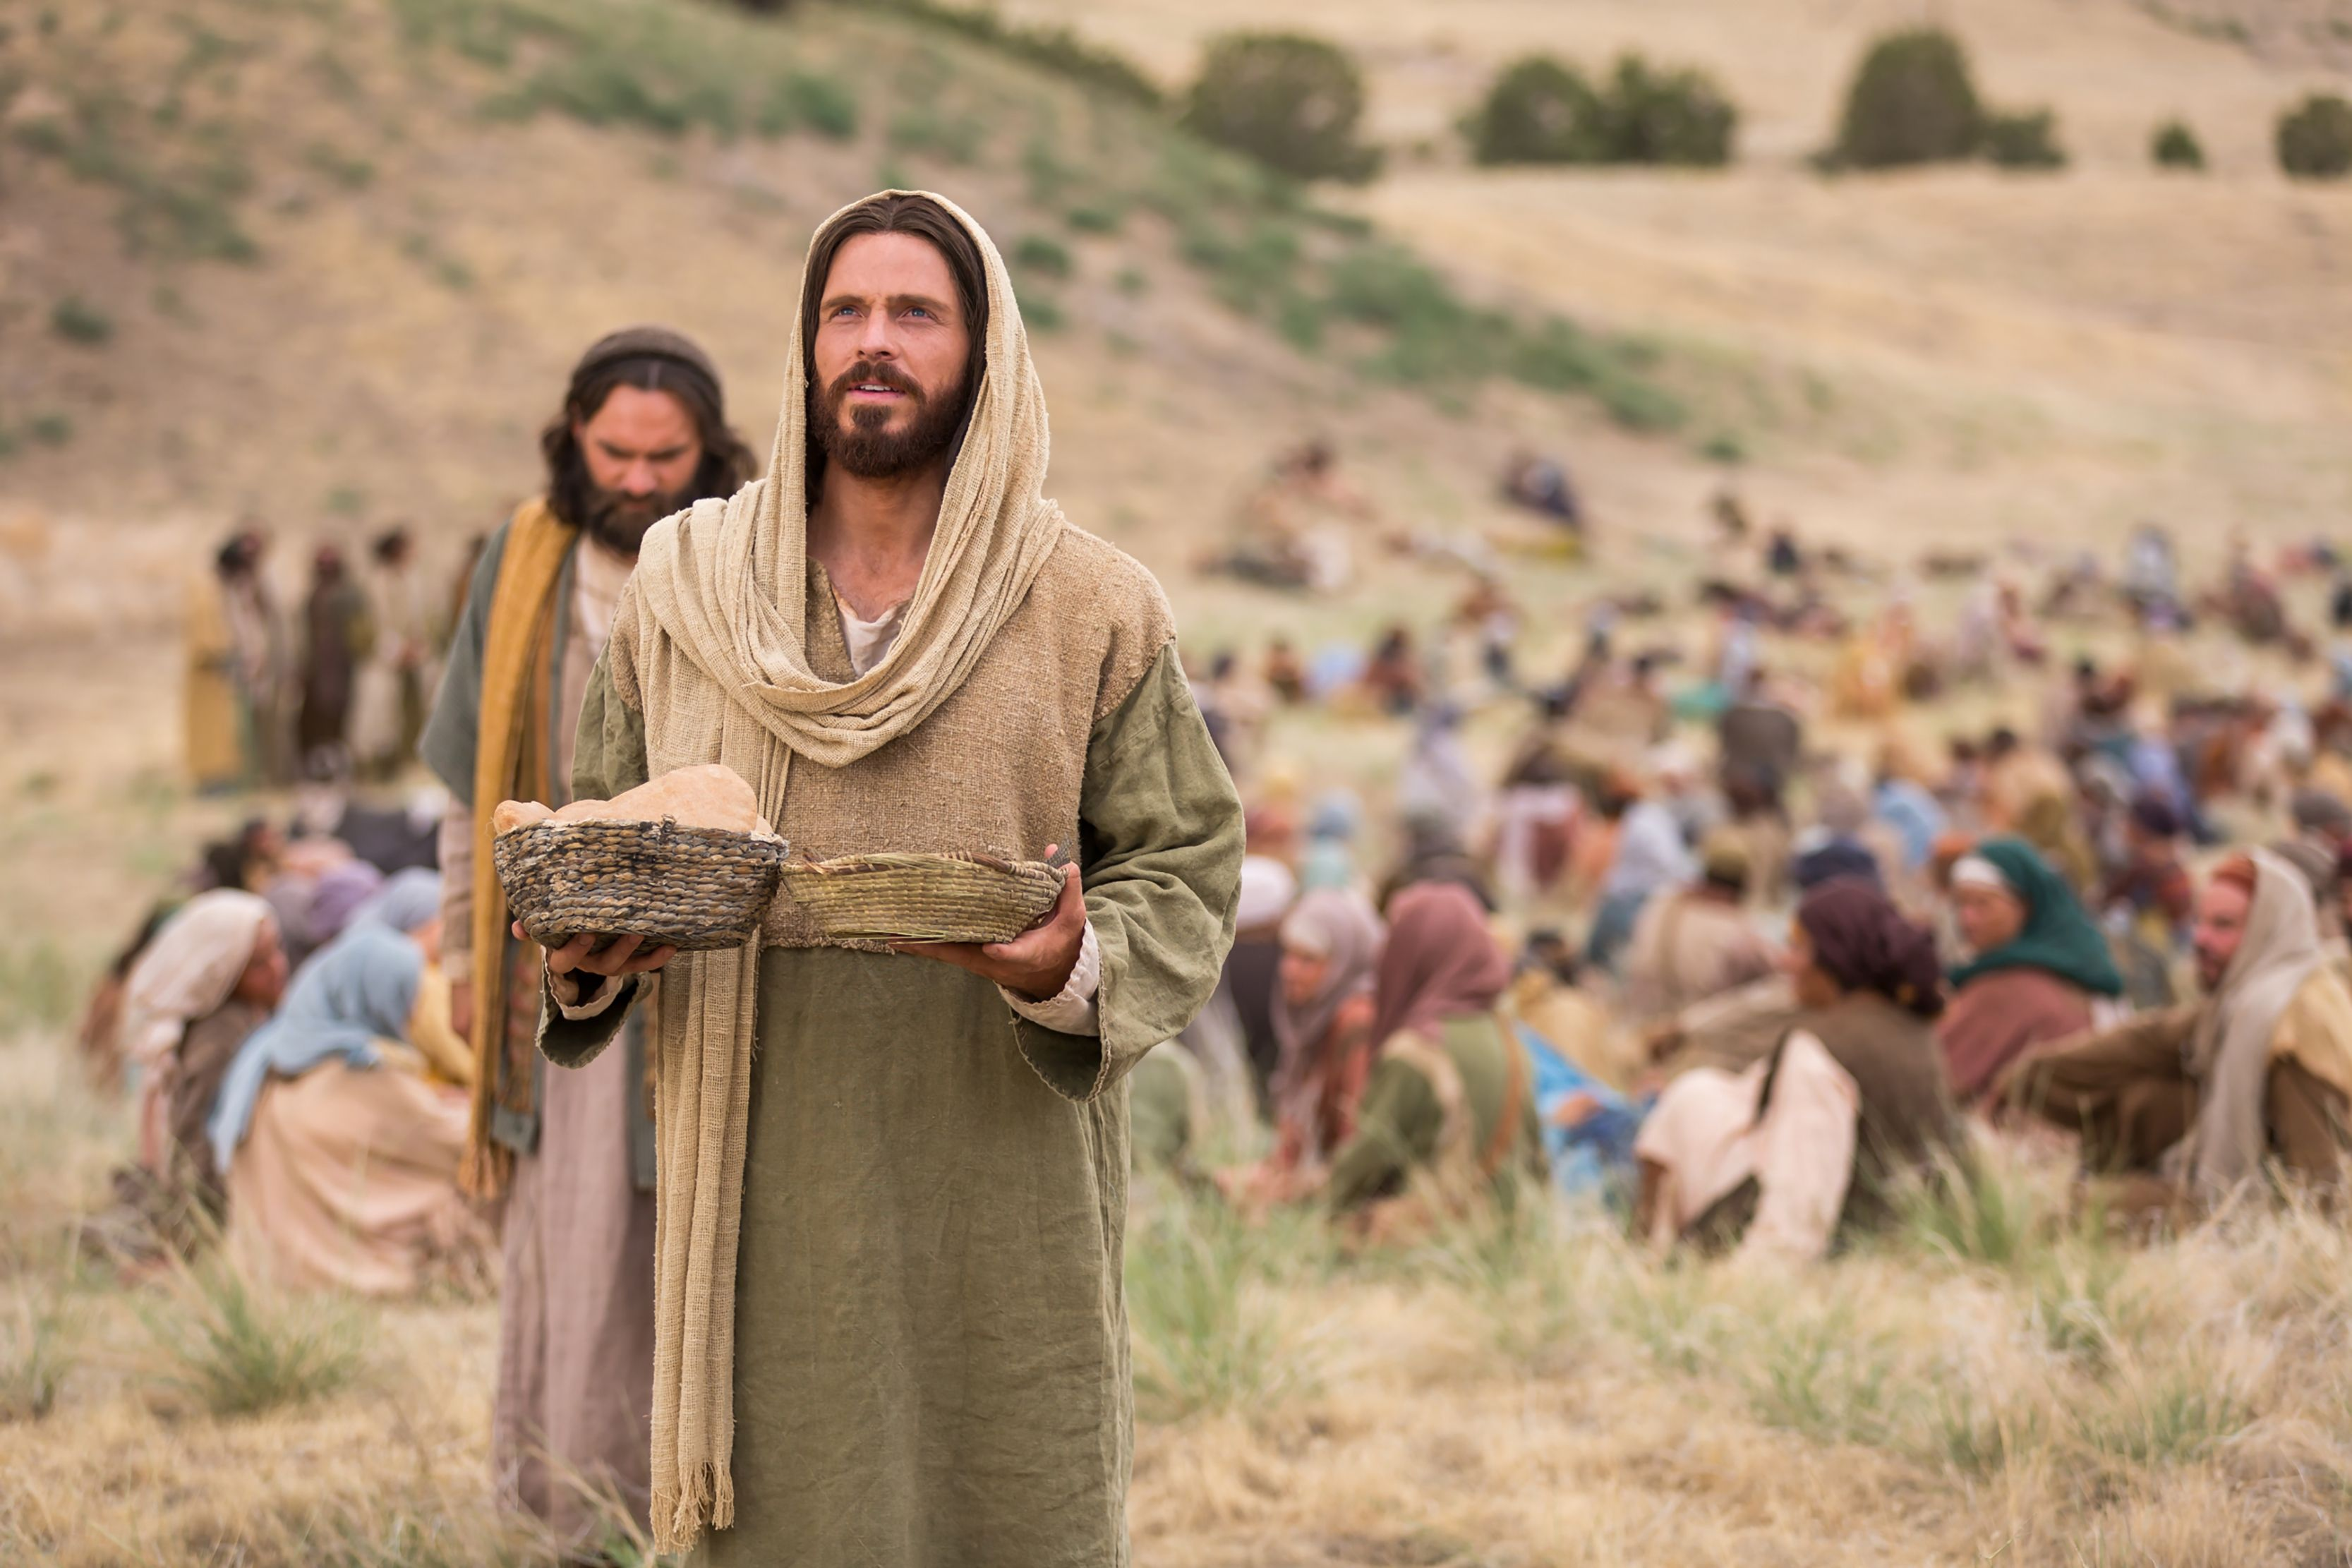 Jesus blesses the bread and fish to feed the people gathered to hear His teachings.